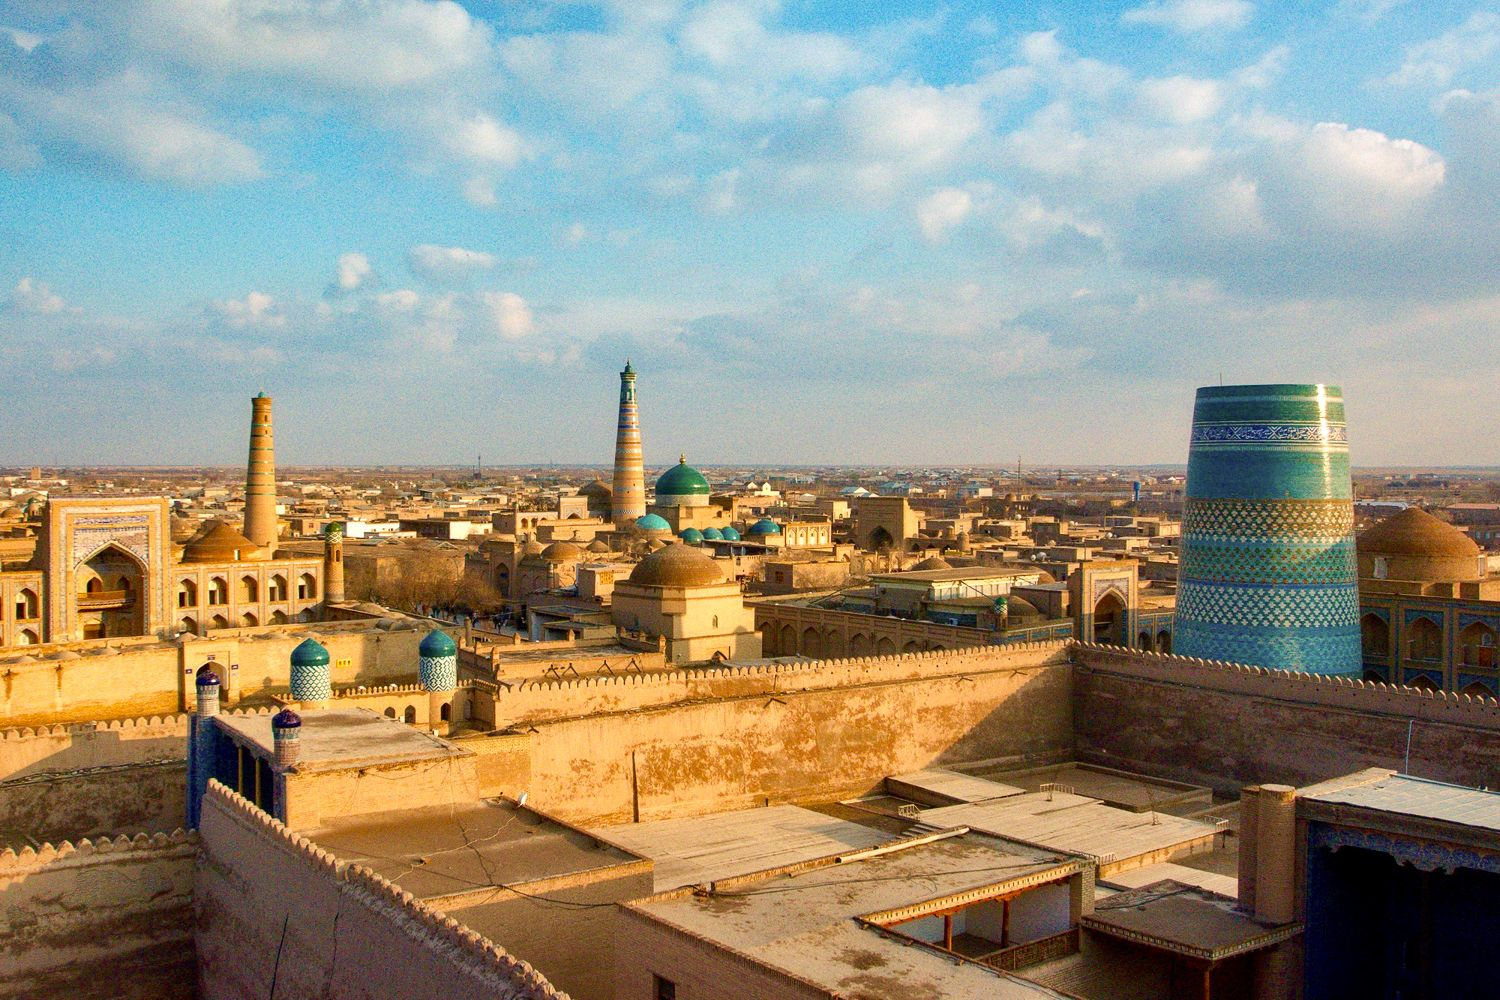 Khiva-rooftop-view-travel-uzebksistan-central-asia.jpg